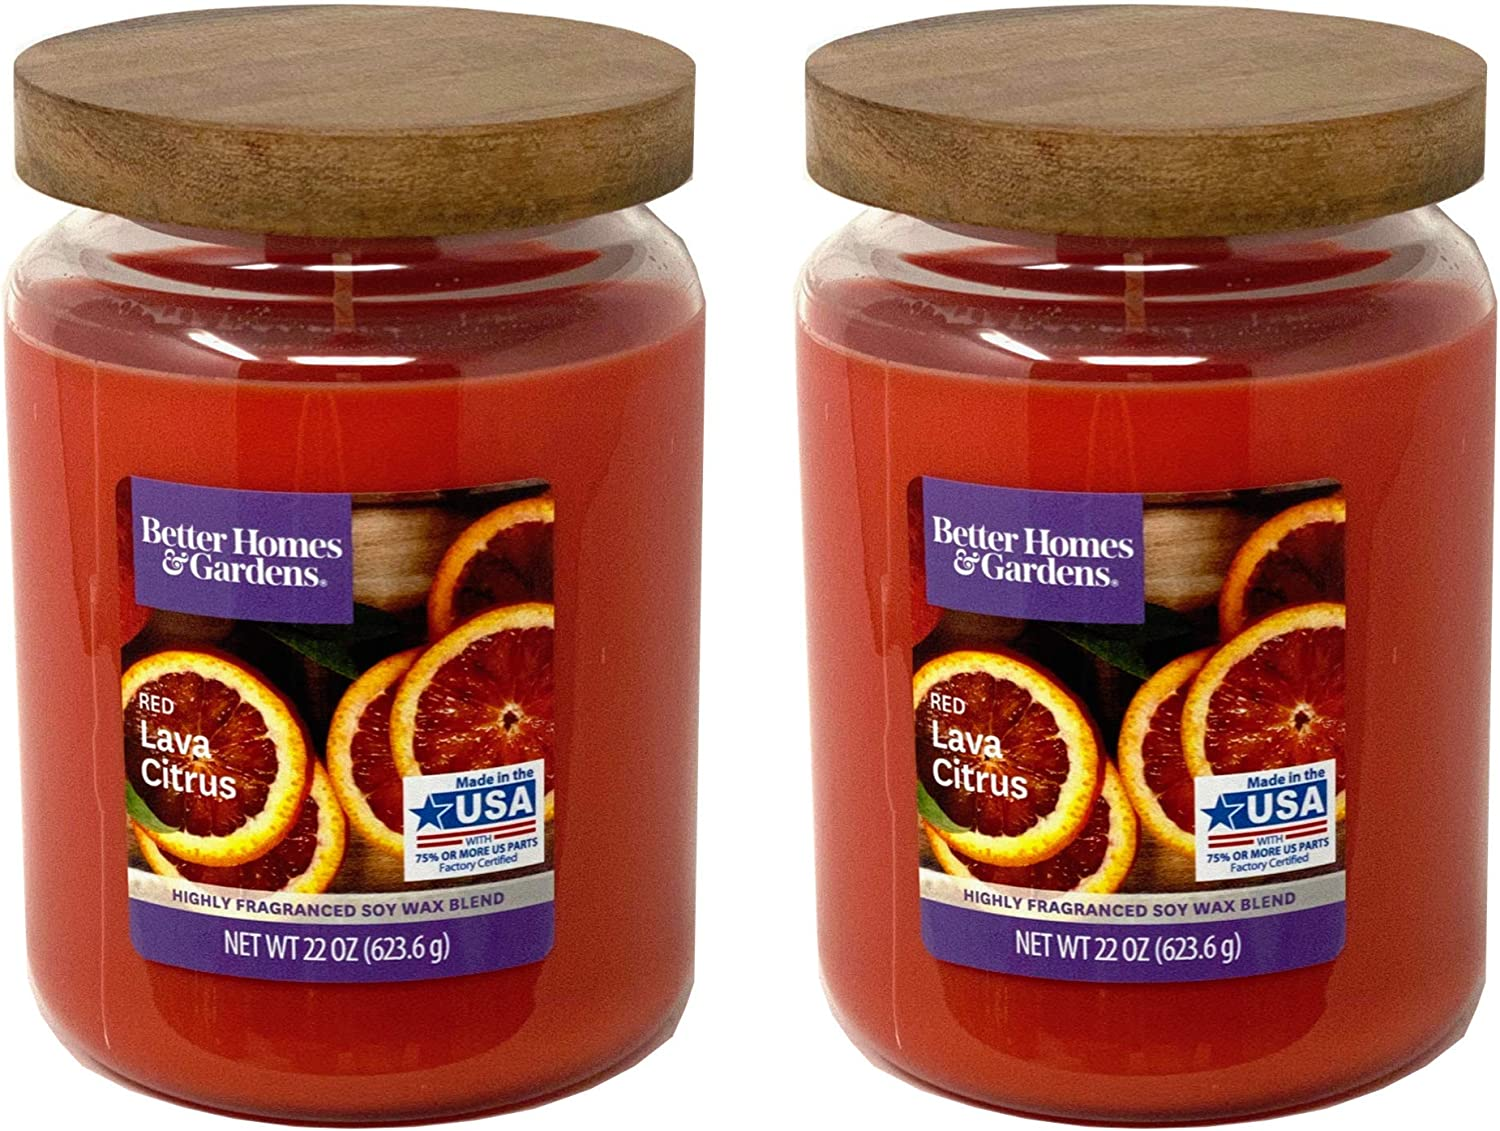 Better Homes Gardens 22oz Scented Candle, Red Lava Citrus 2-Pack